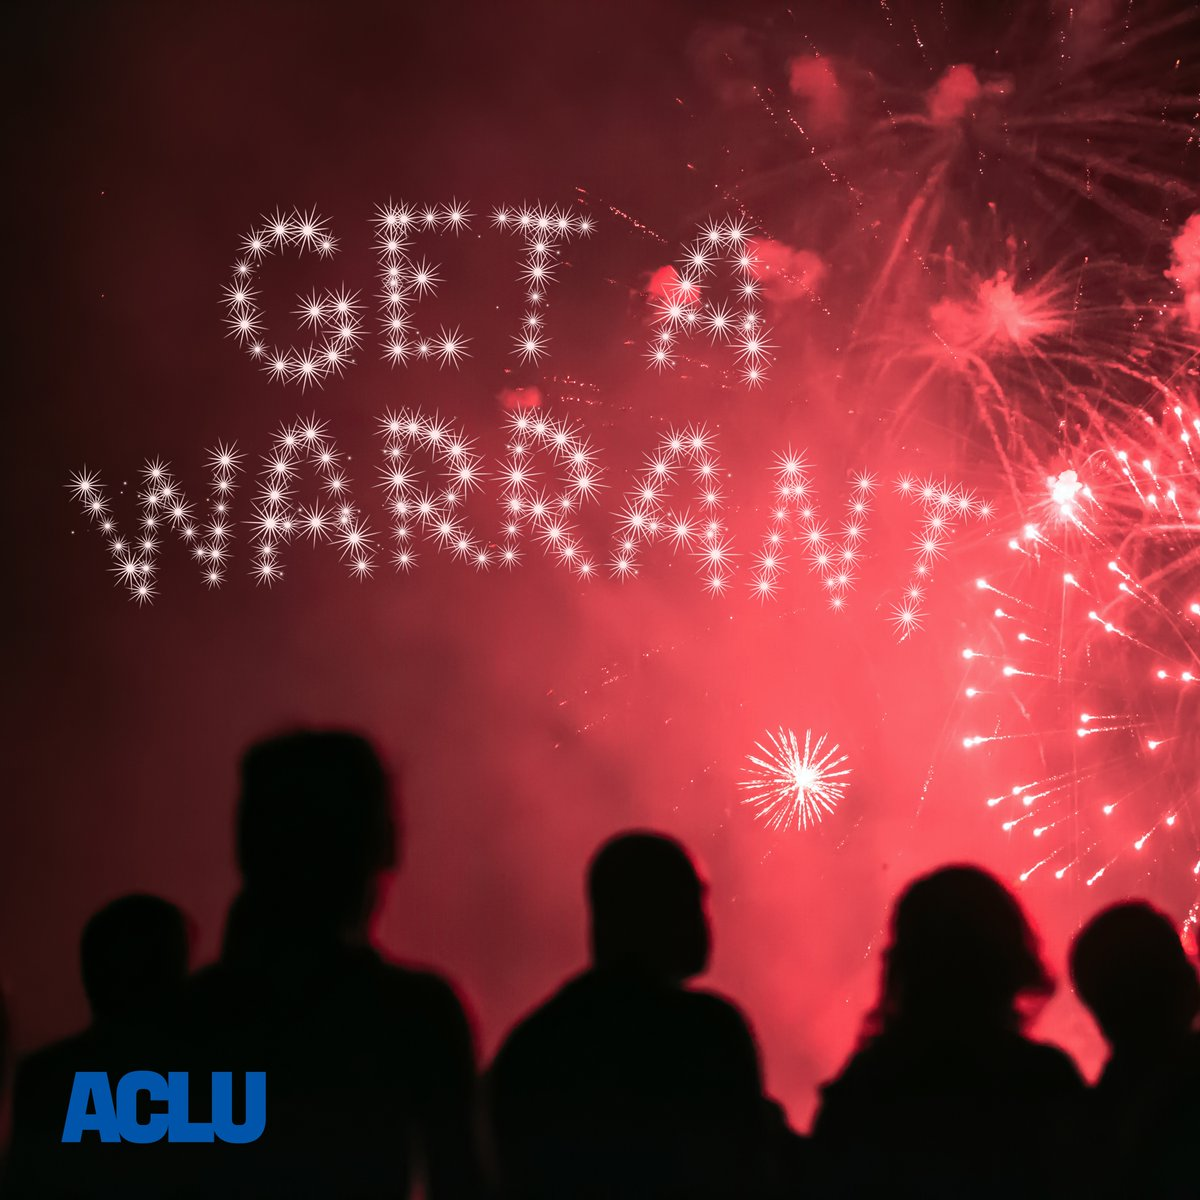 A firework pic worth sharing. Happy 4th of July!